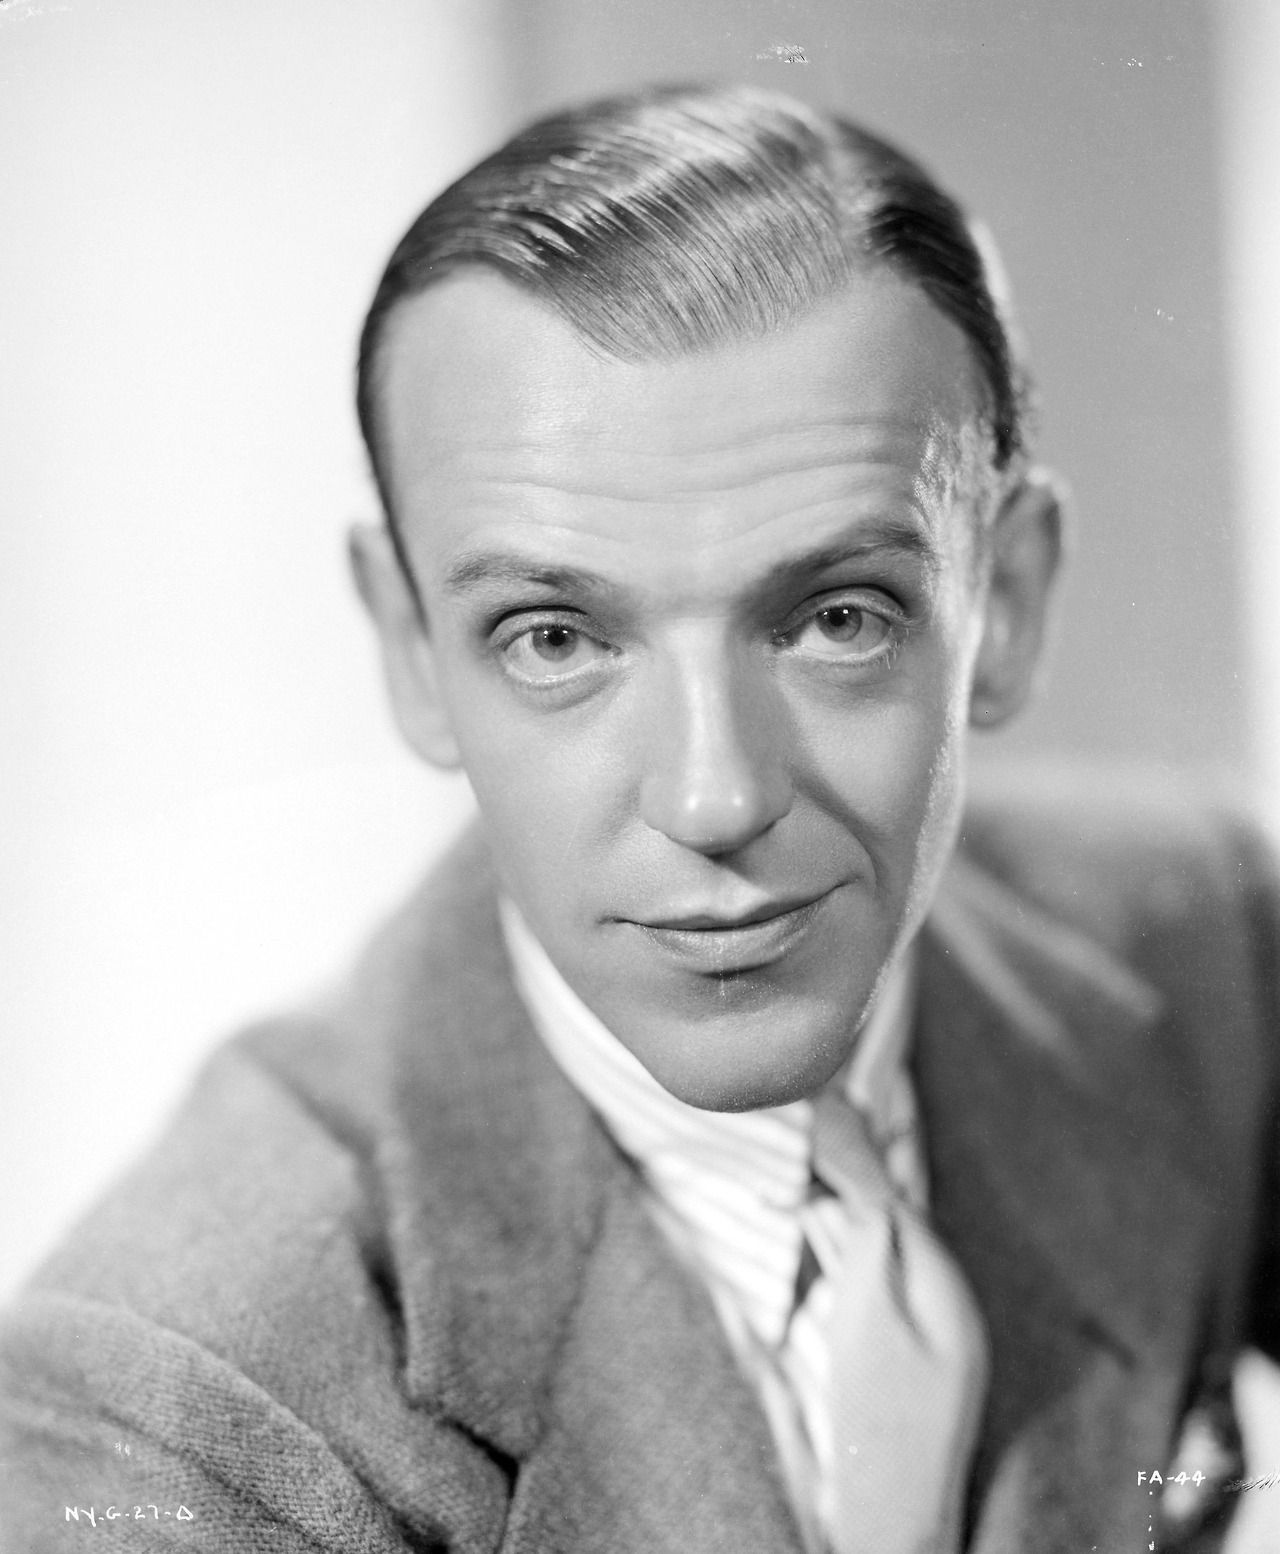 sala66: Fred Astaire, 1930s